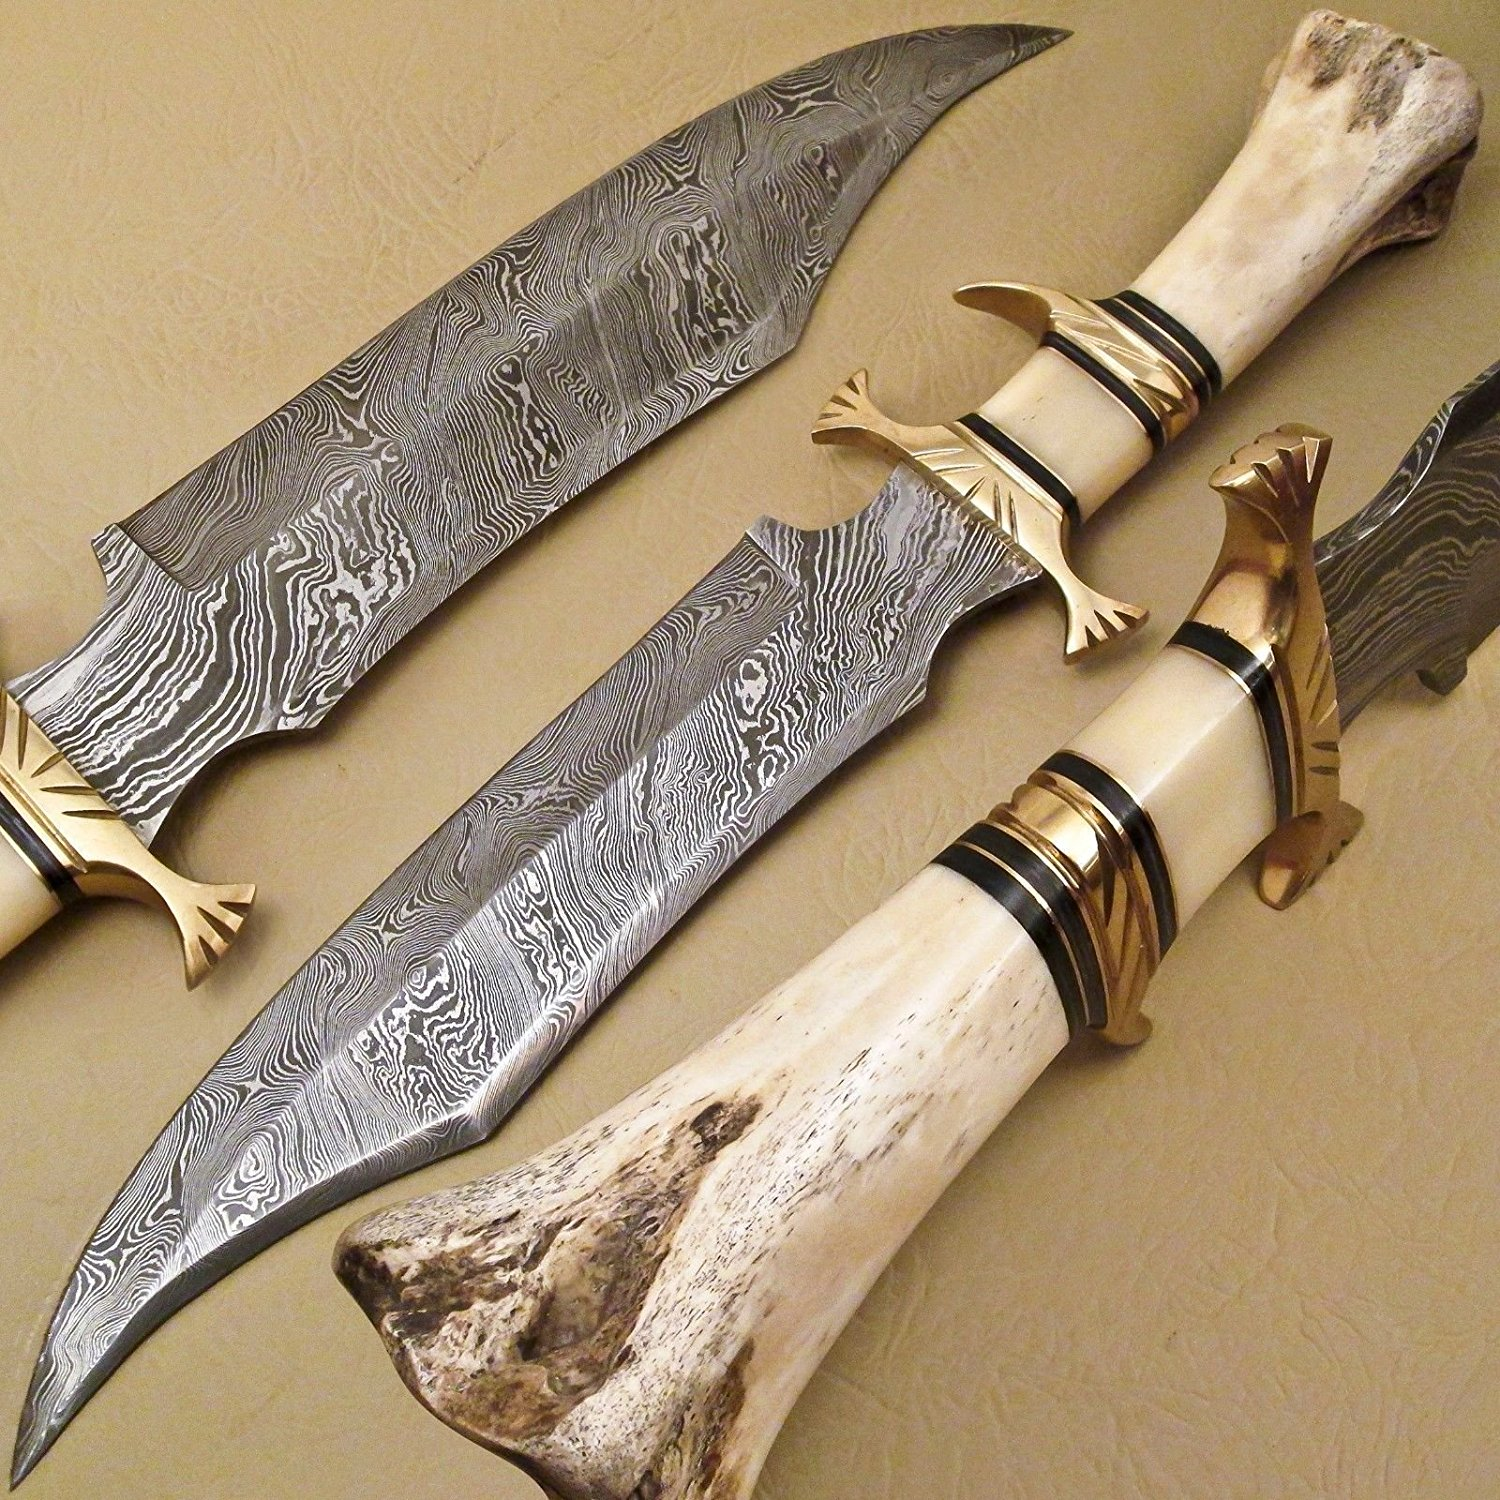 Beautiful Handmade Custom Damascus Steel Fixed Blade Bowie Knife Camel Bone Handle For Collectible Tactical Combat Military Rambo Hunting with Sheath